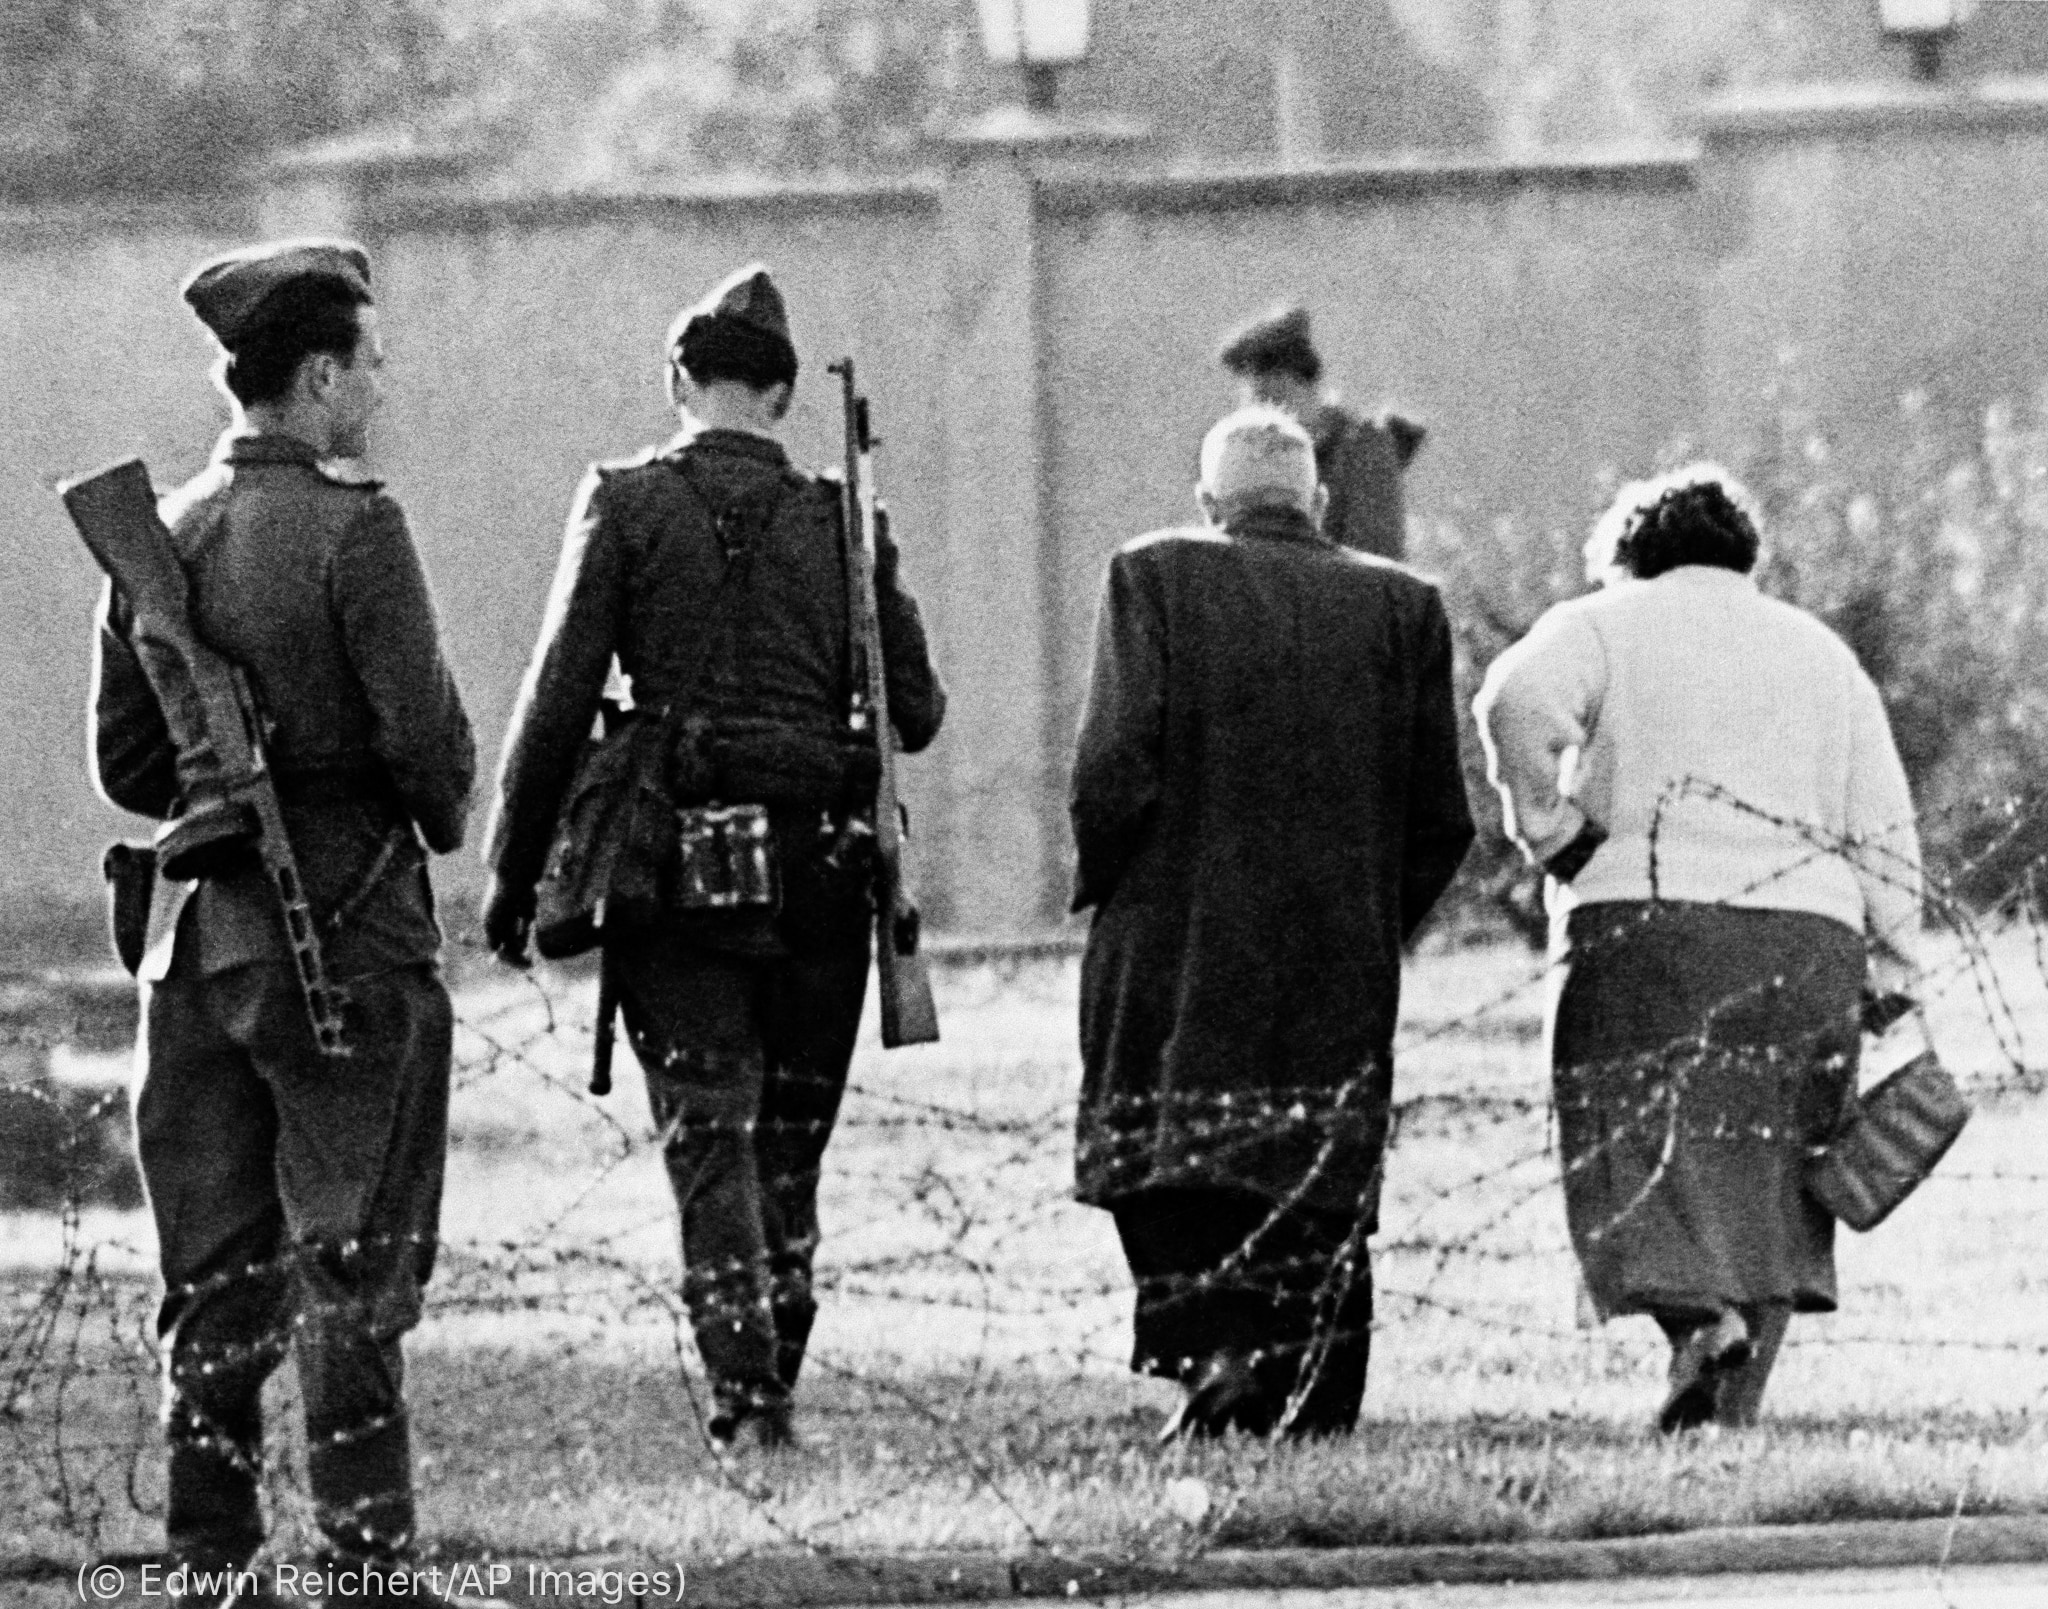 Couple walking away with soldier (© Edwin Reichert/AP Images)